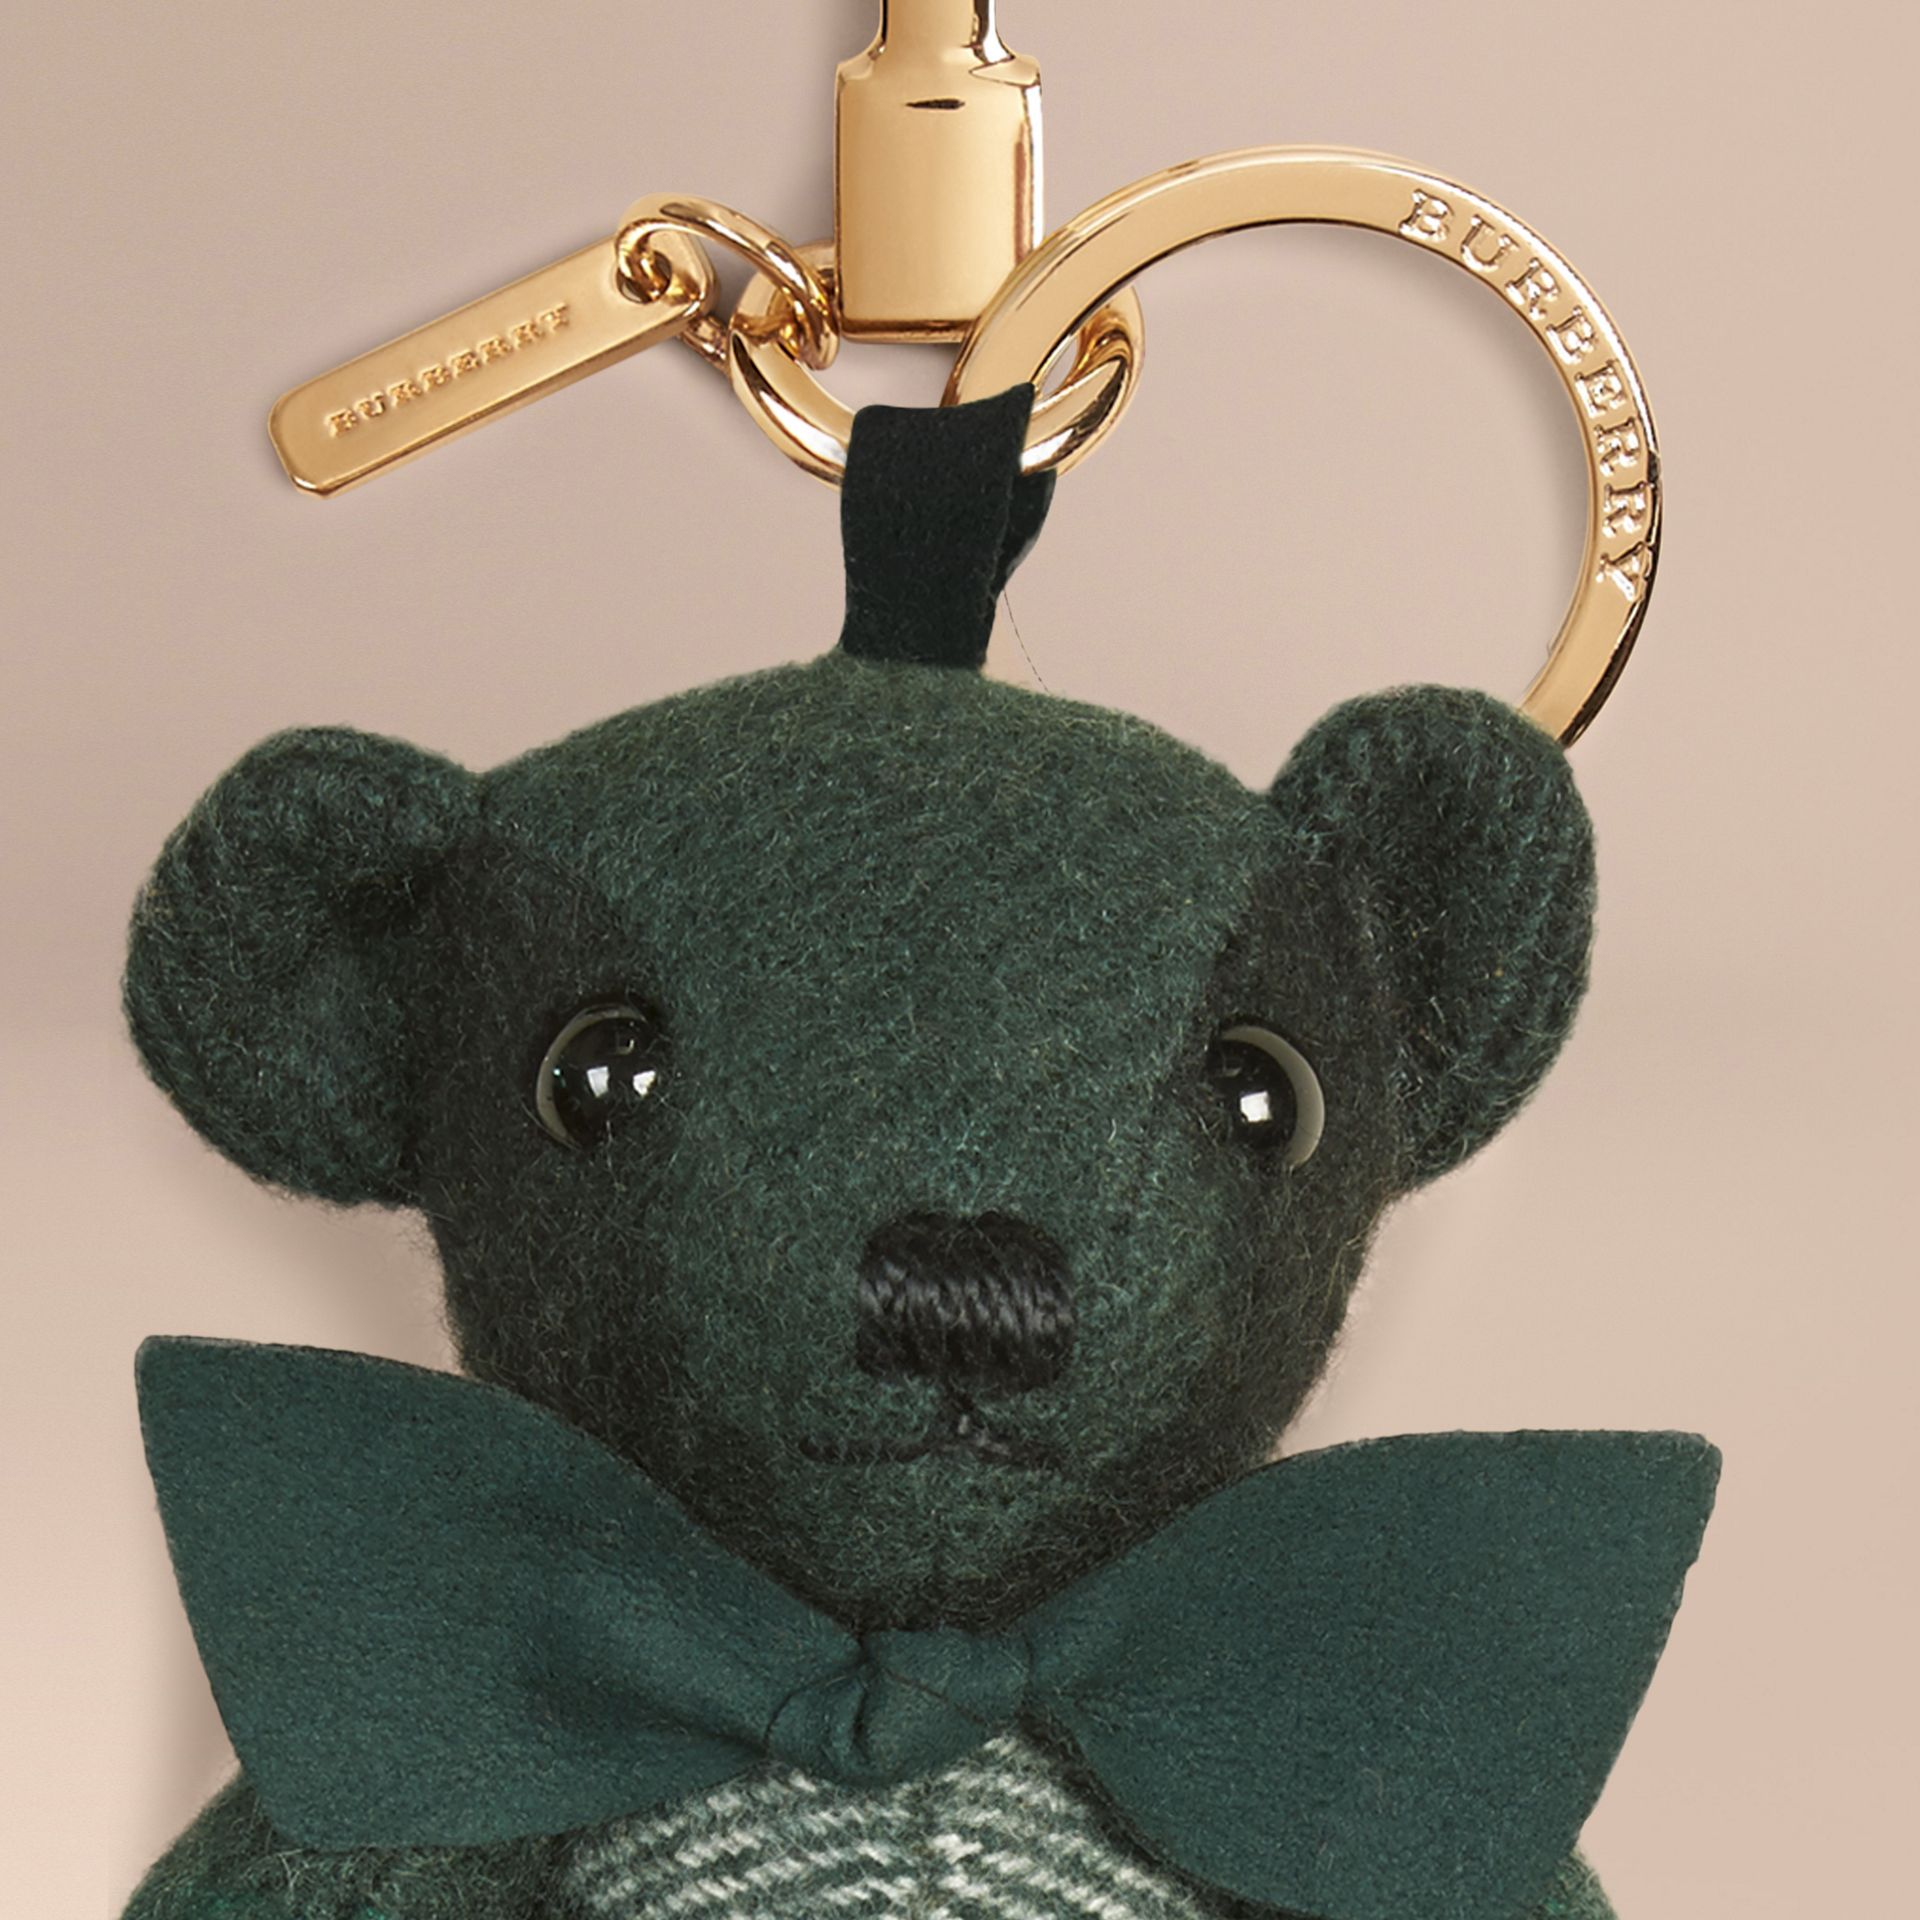 Thomas Bear Charm in Check Cashmere in Dark Forest Green - Men | Burberry Australia - gallery image 1